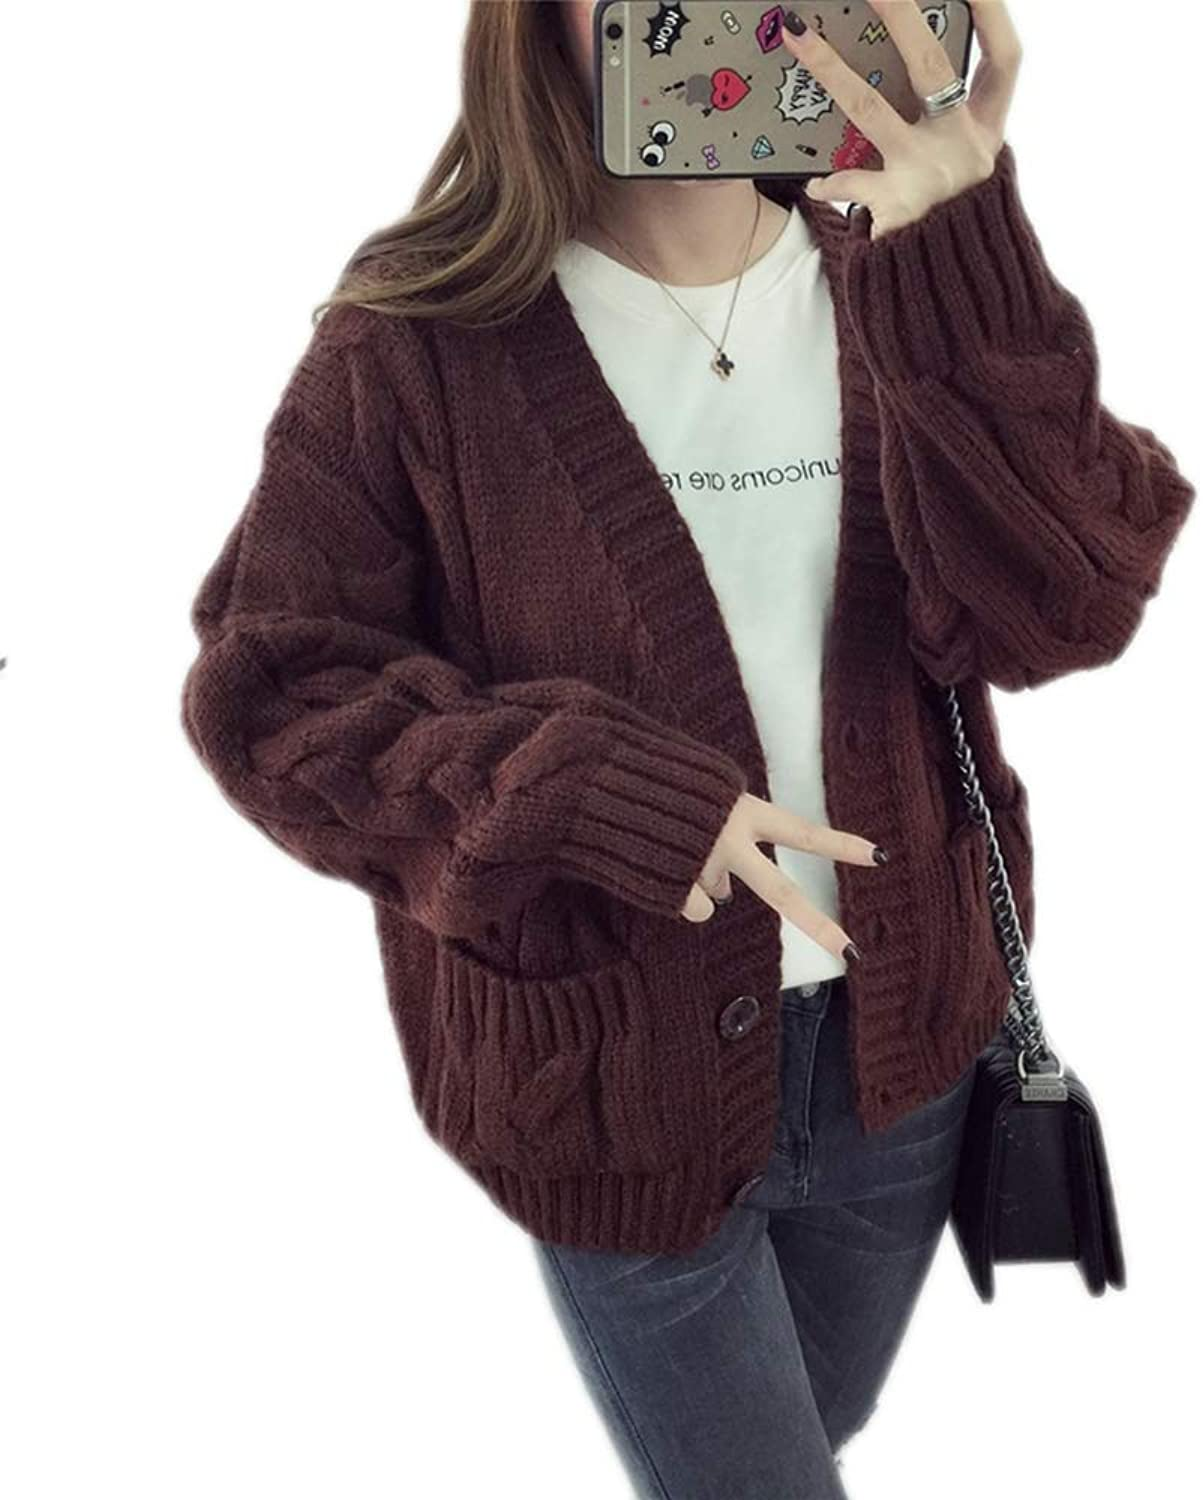 BCVHGD Women Sweater Cardigans Knitted Coat Casual Sweater Poncho V Neck Button Up Warm Jacket Female Outerwear